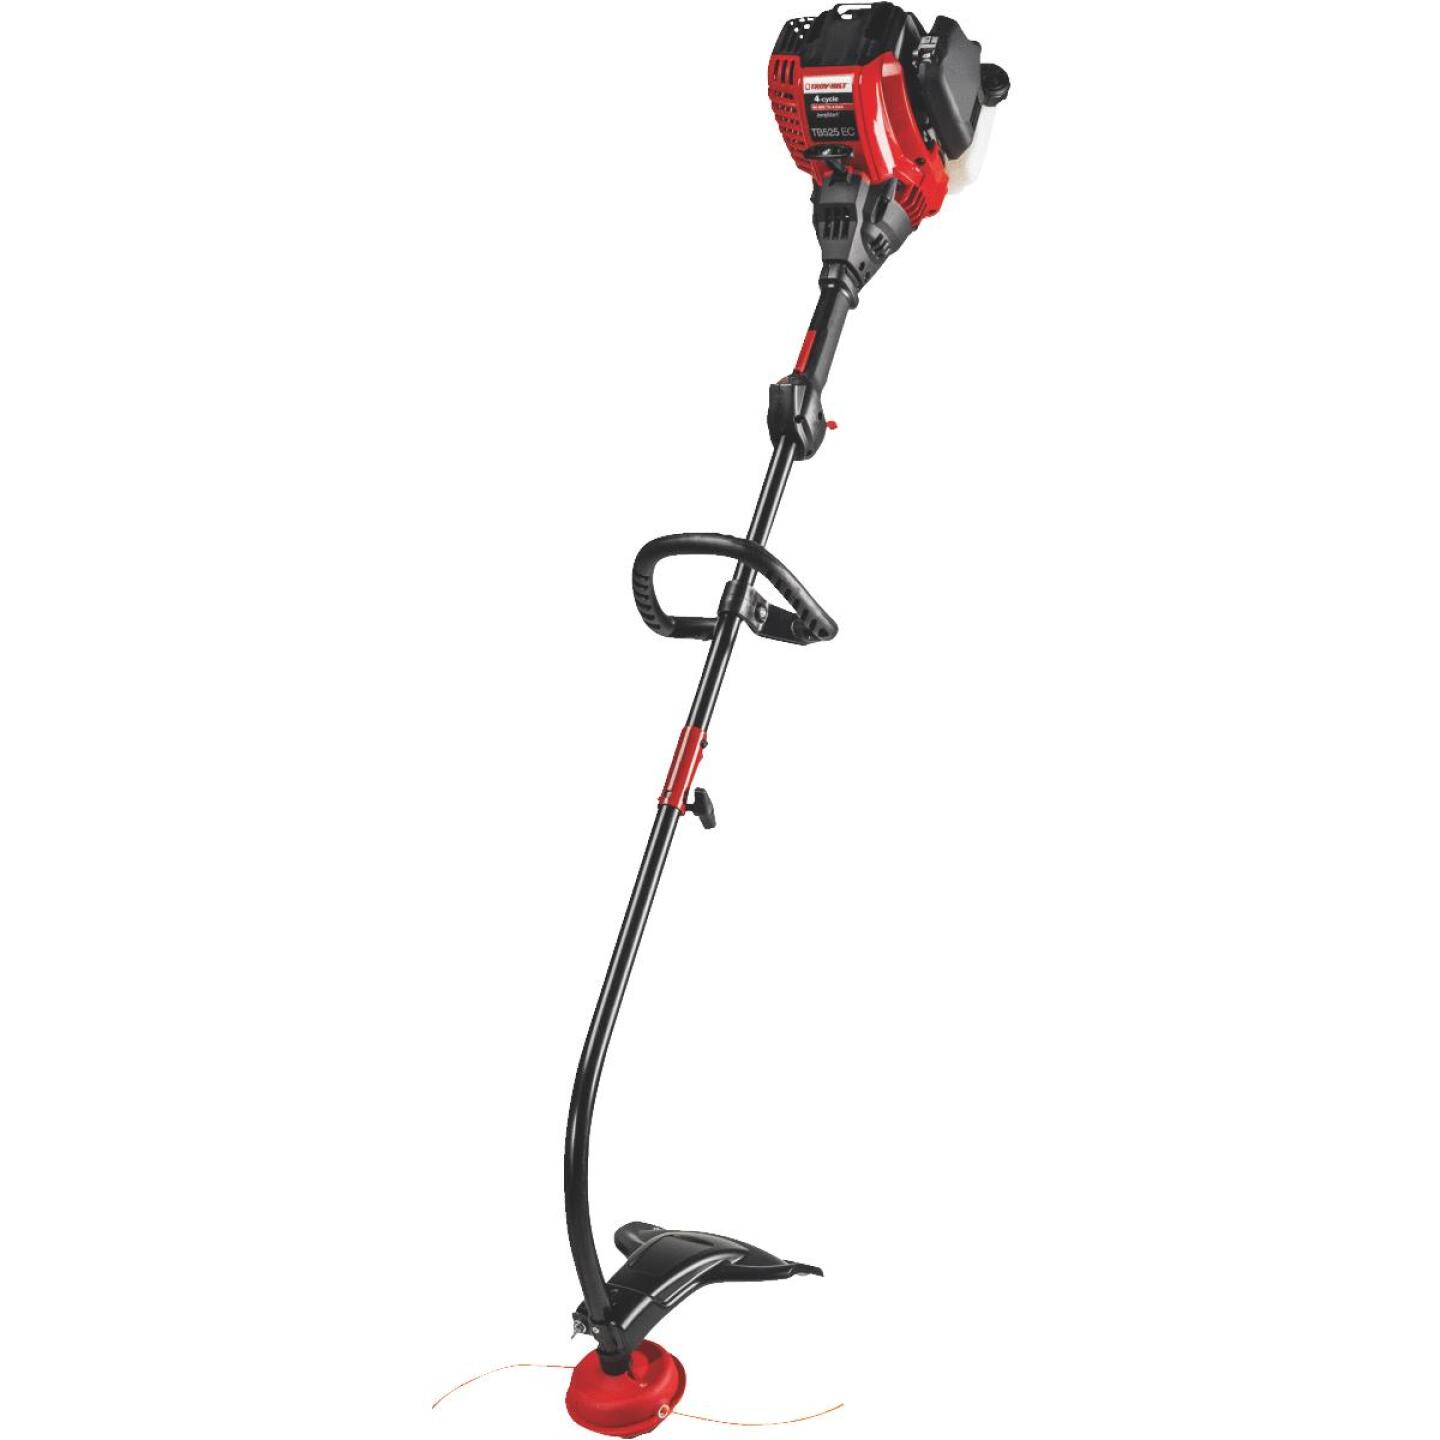 Troy-Bilt TB525EC 17 In. 29CC 4-Cycle Curved Gas String Trimmer Image 1